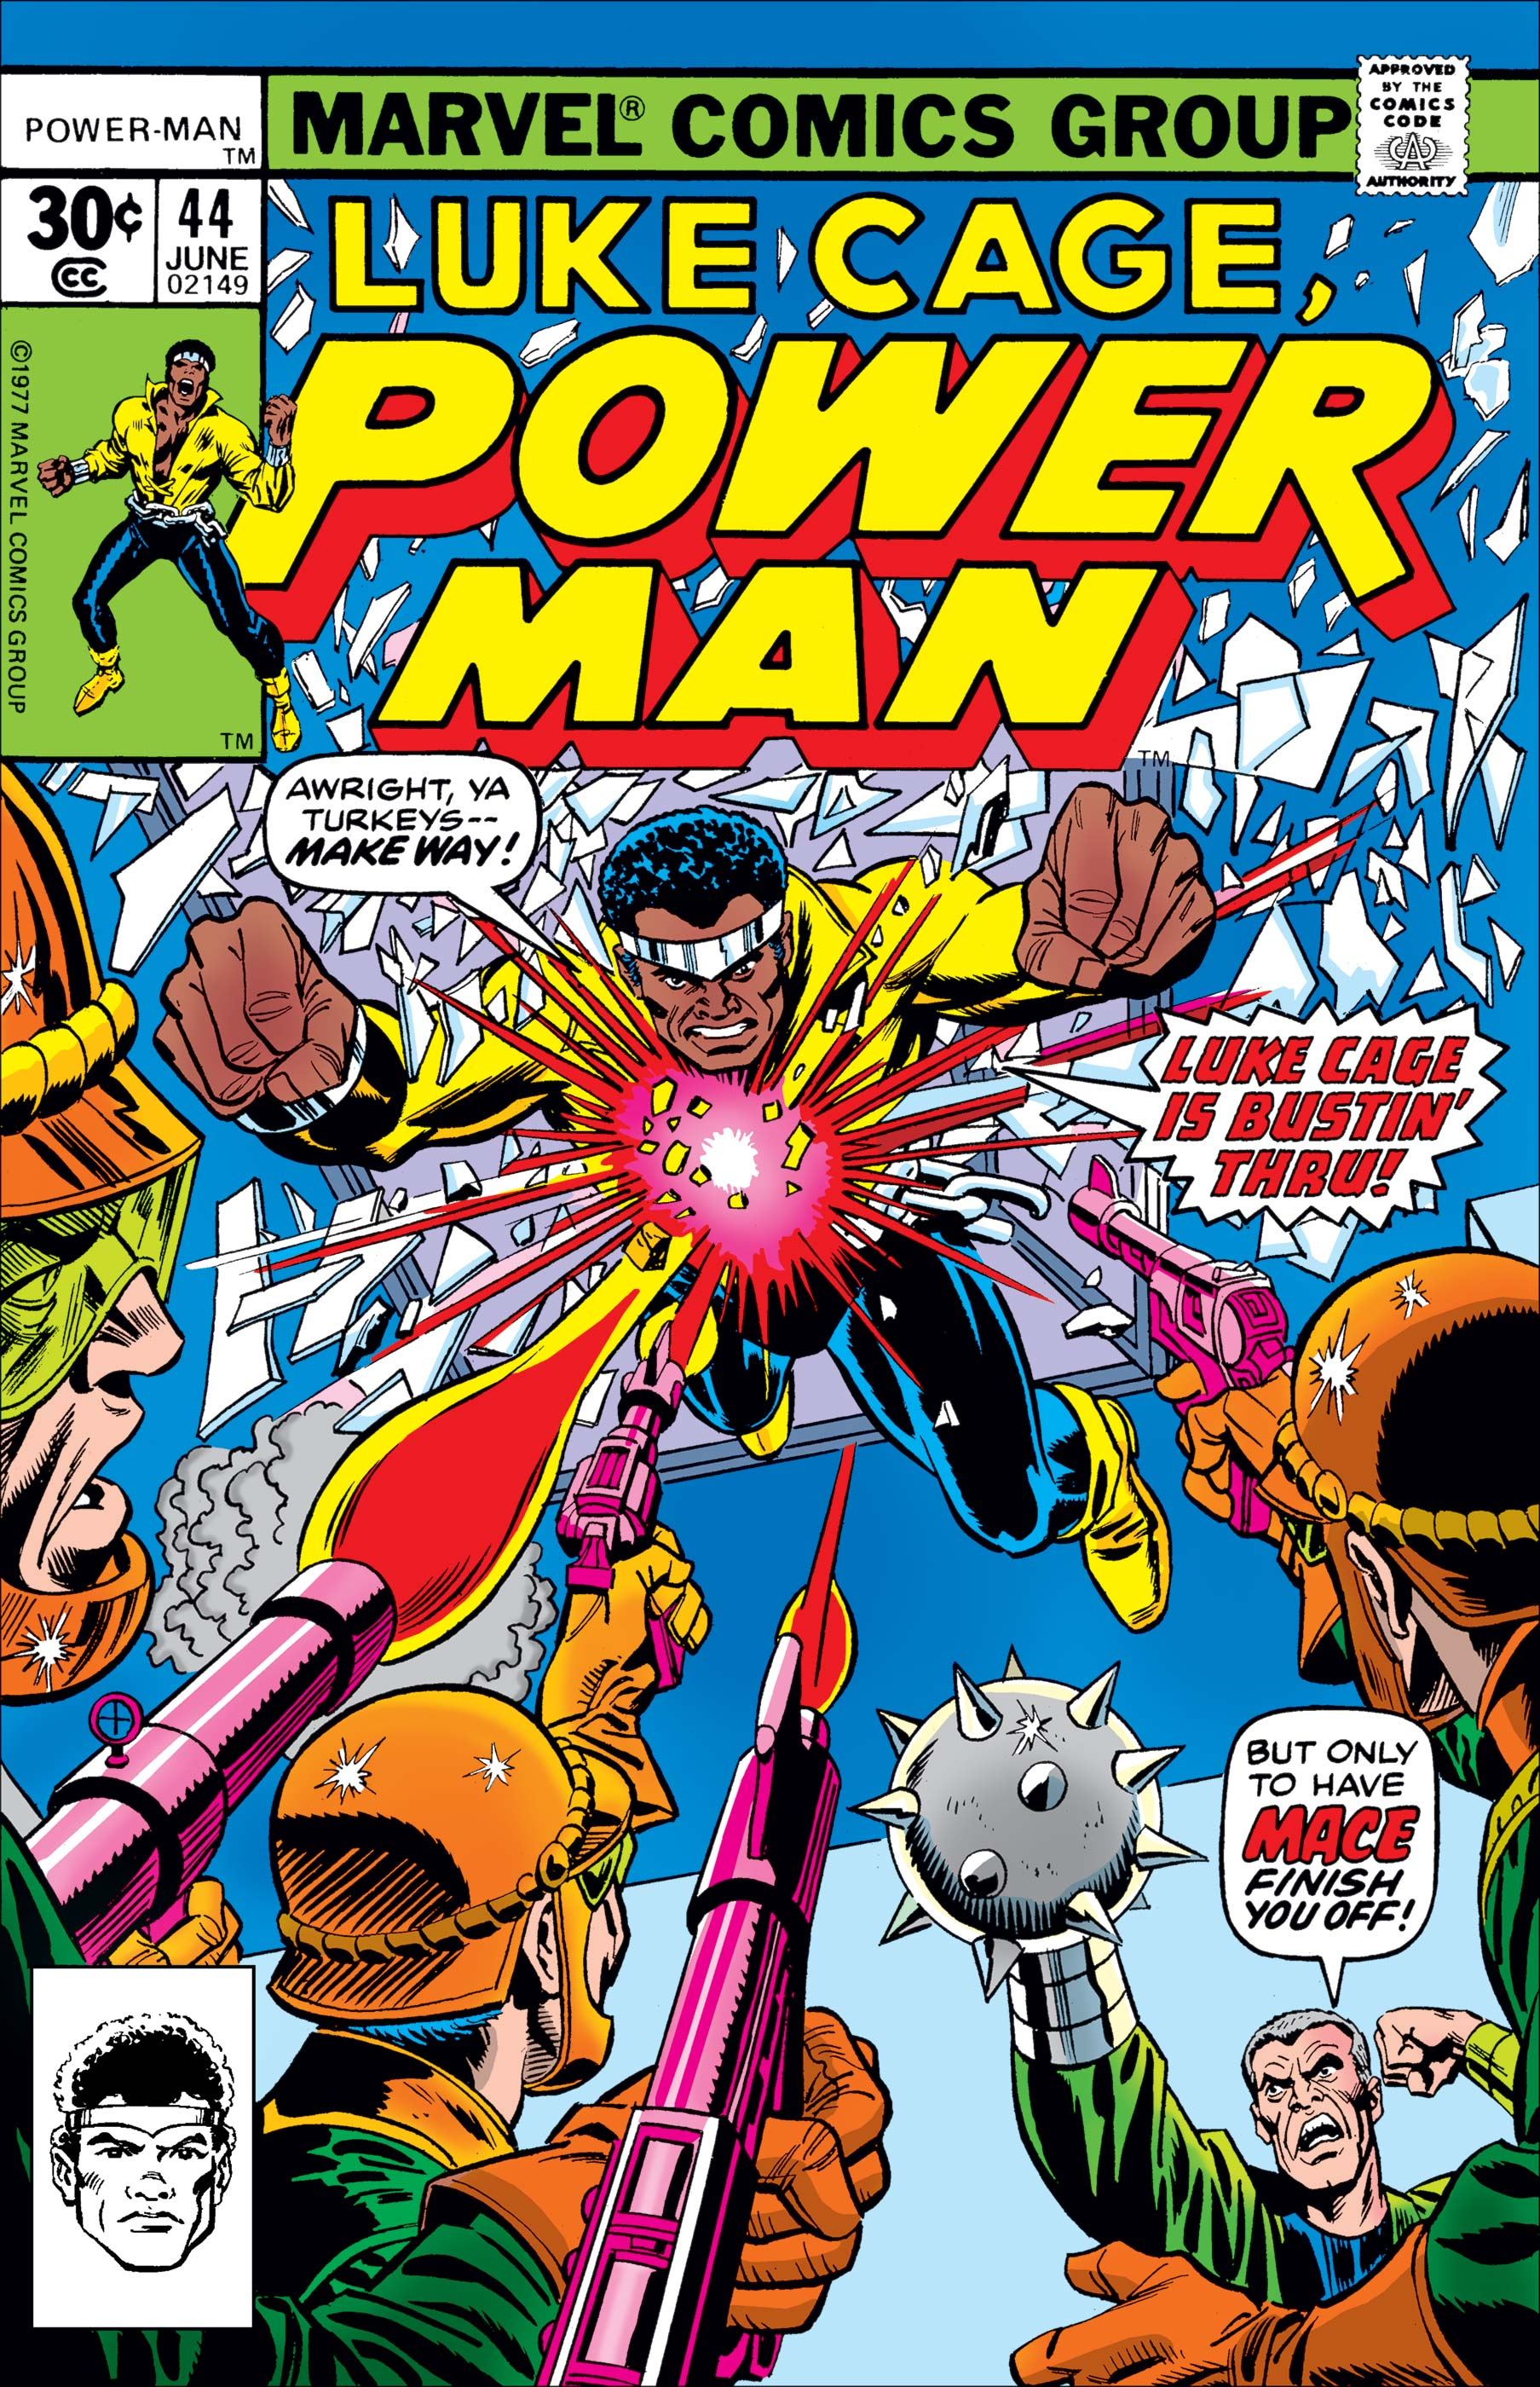 Power Man (1974) #44